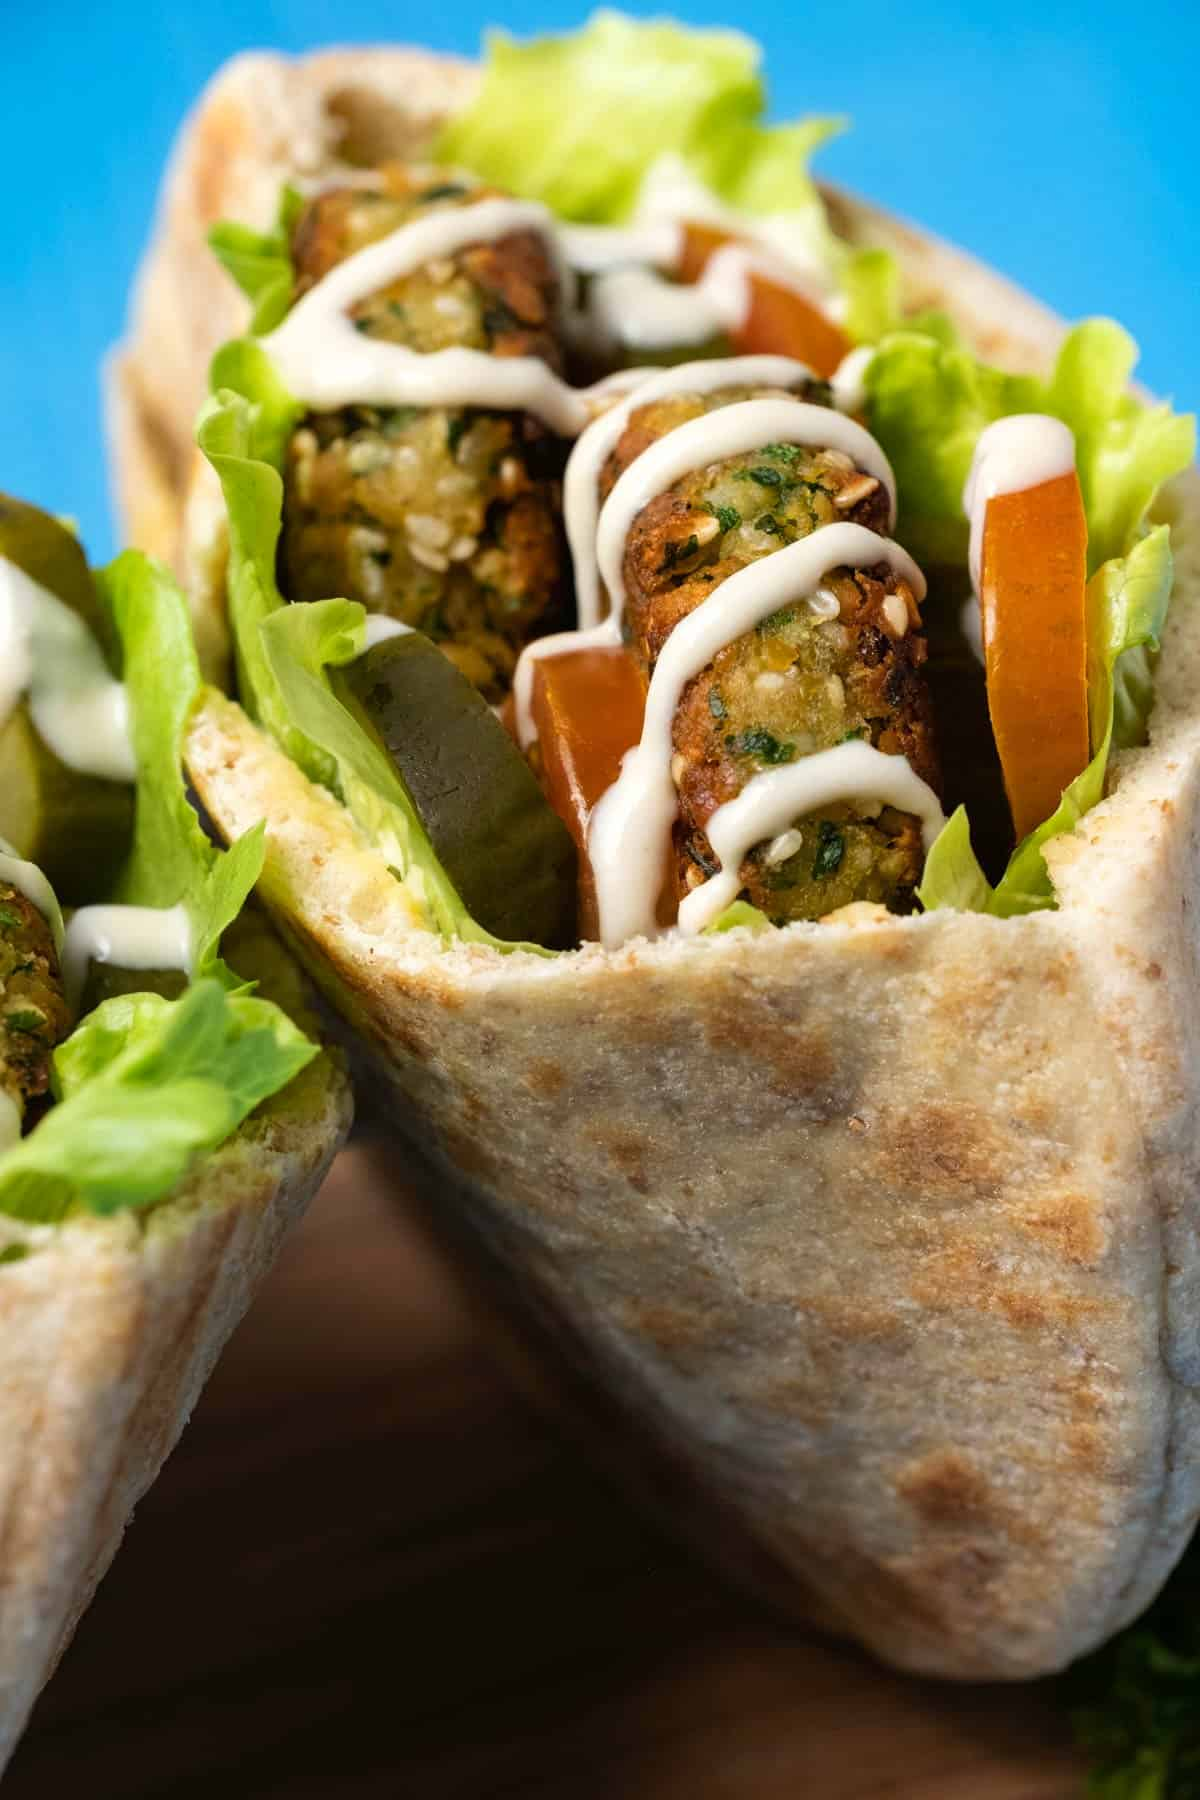 Falafel in pita breads with salad and tahini sauce.